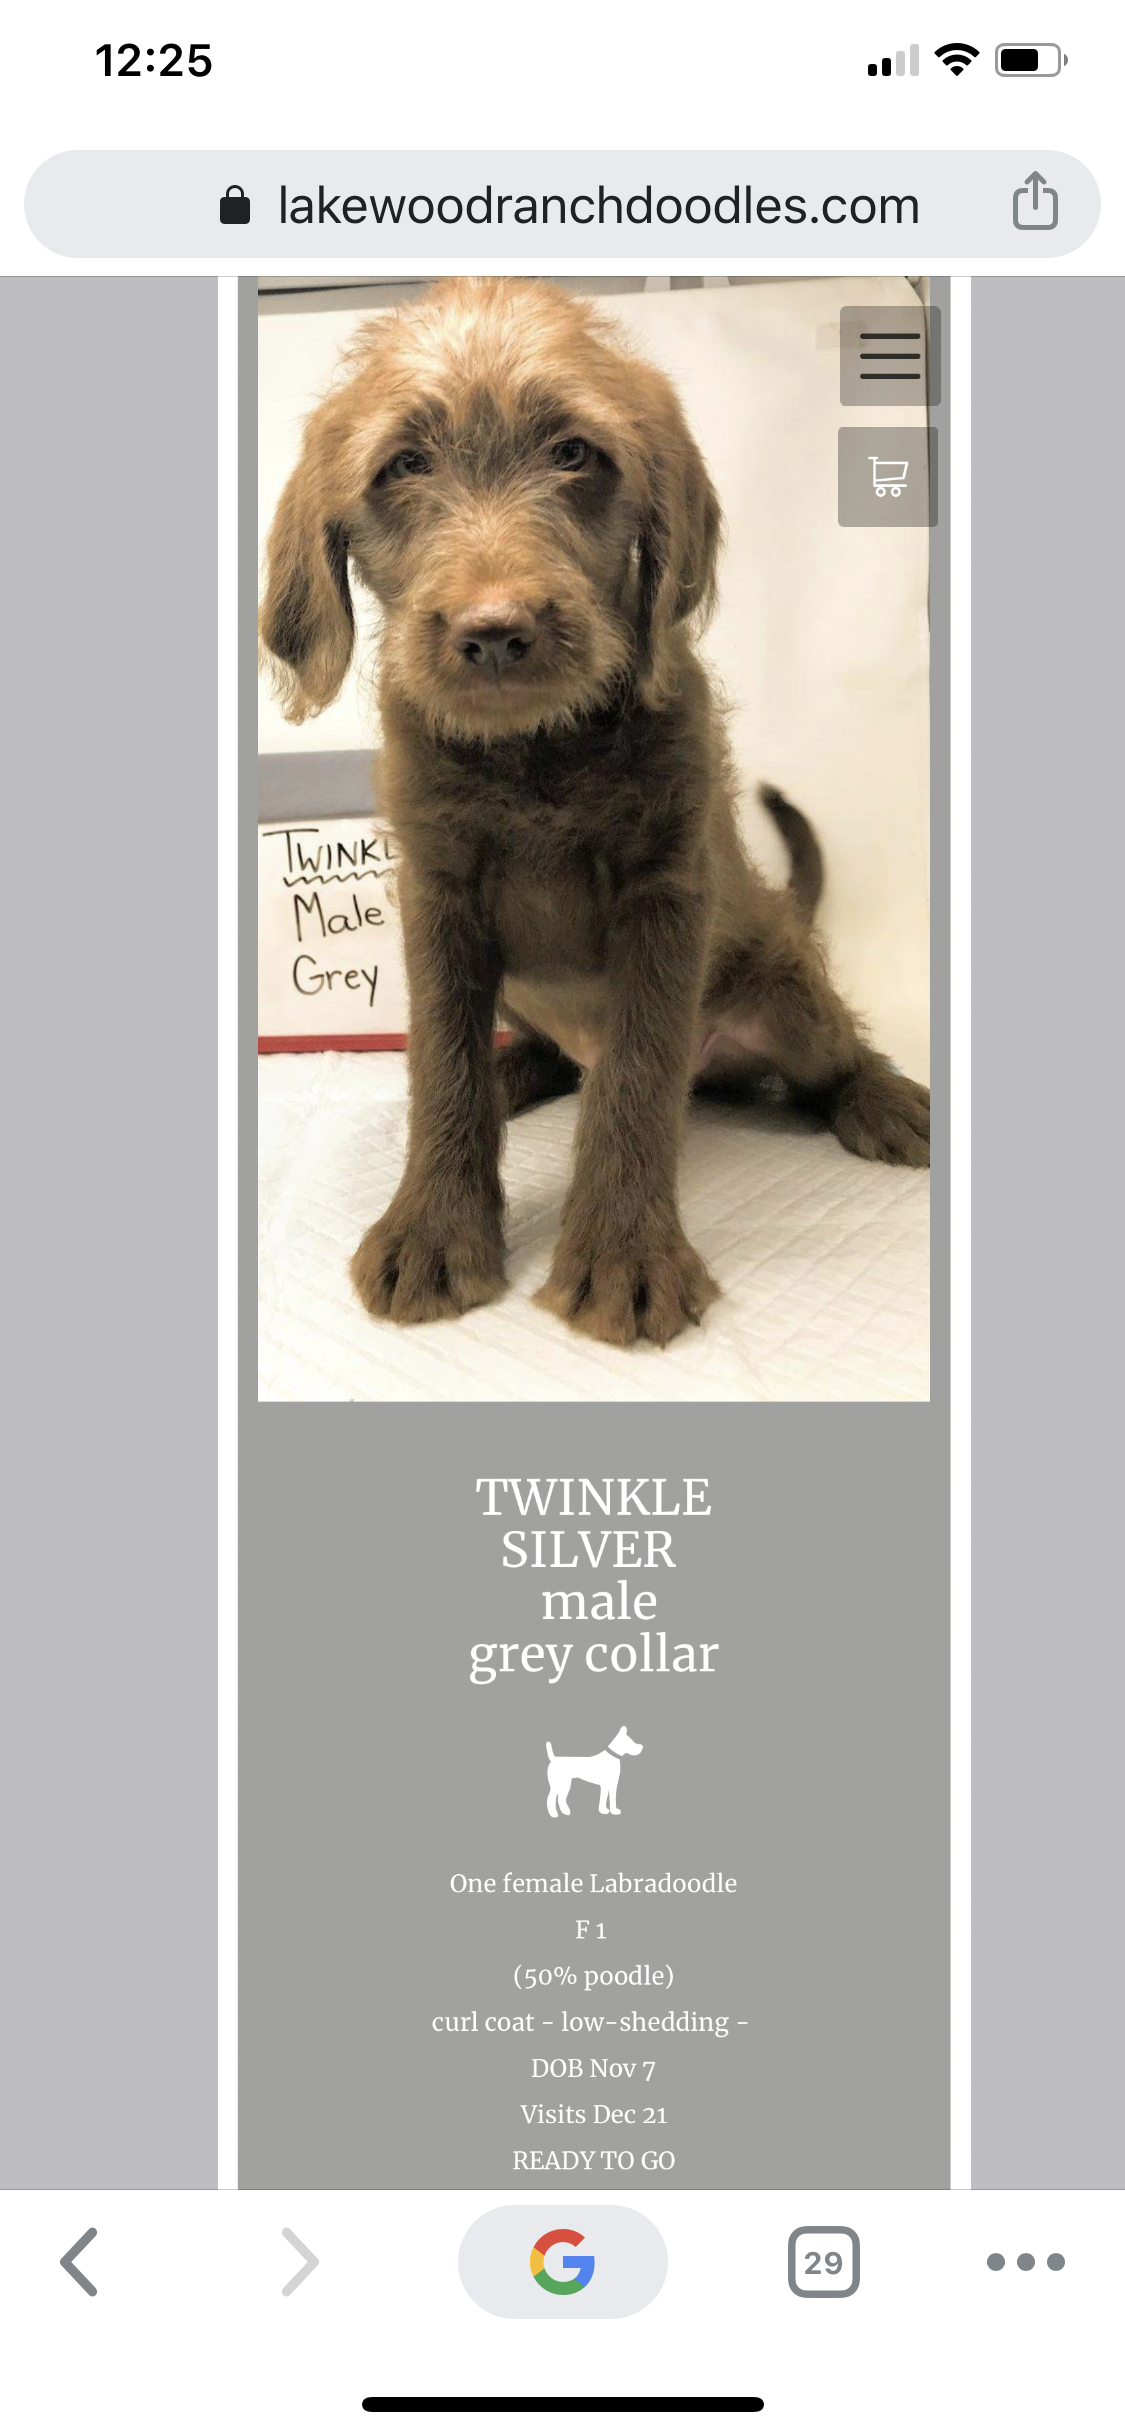 Twinkle grey - male Labradoodle for sale in Lindsay, Ontario